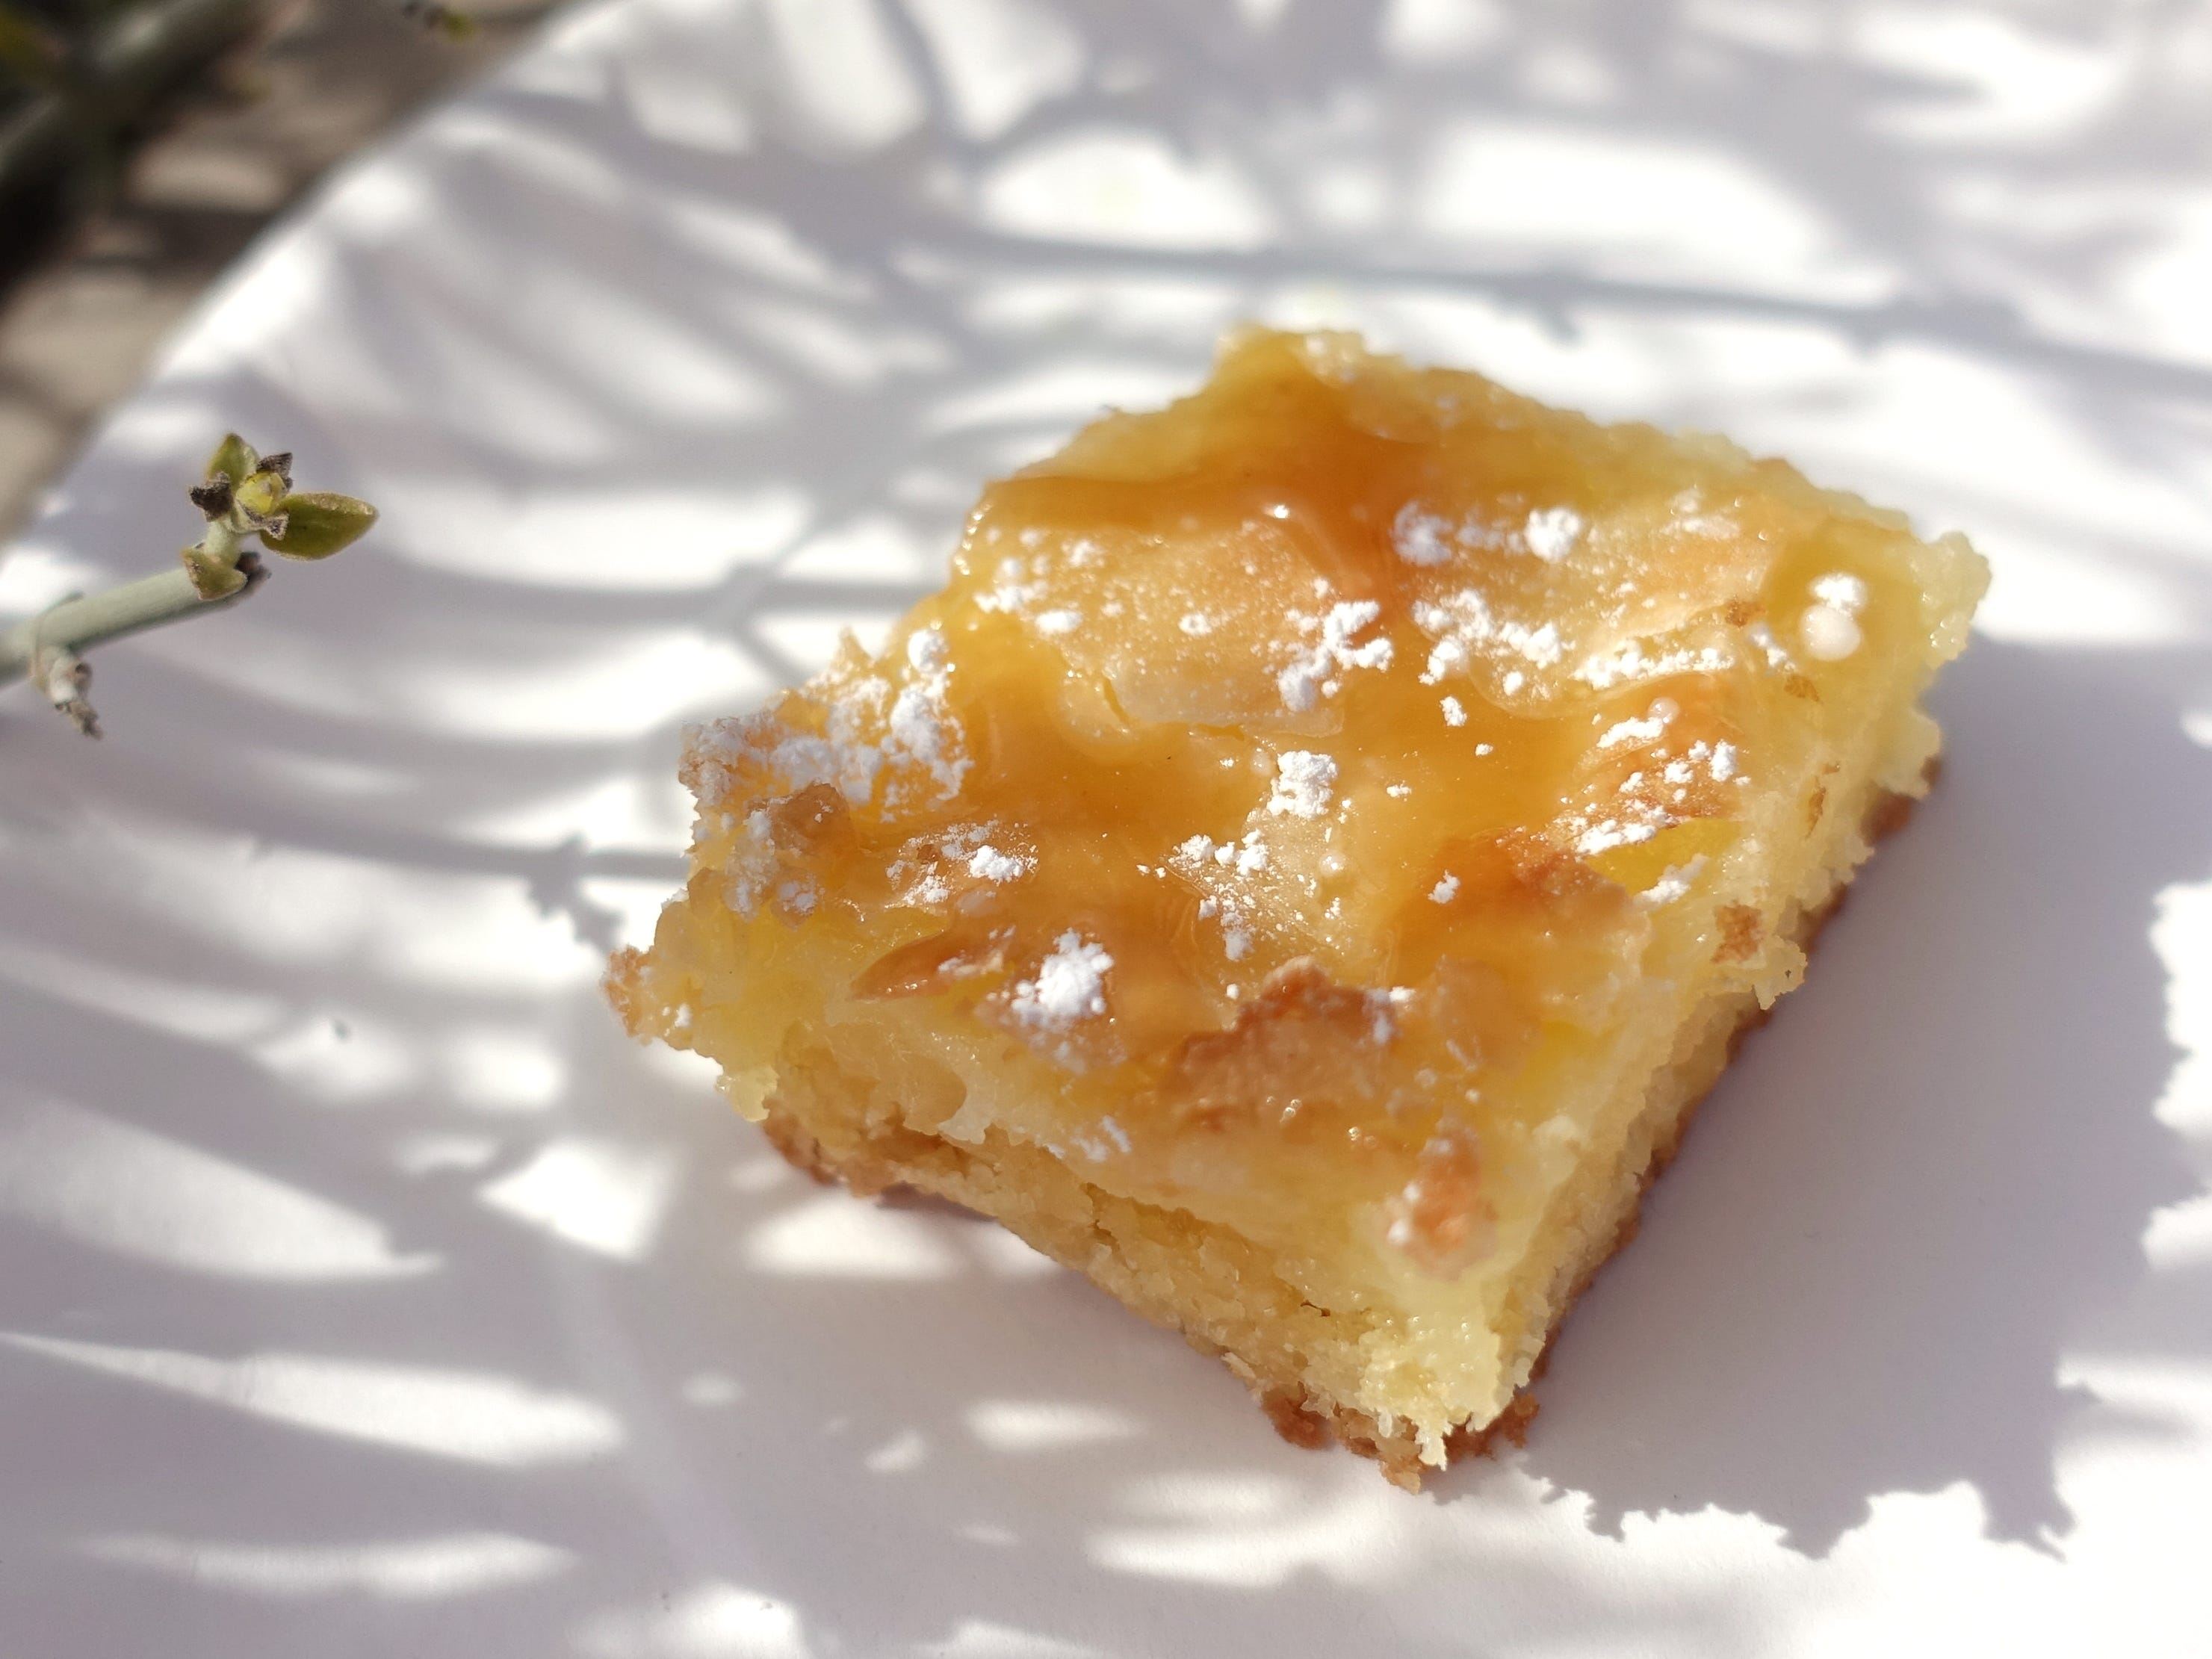 Gooey butter cake from Frasher's Smokehouse at the 2019 Devour Culinary Classic at the Desert Botanical Garden in Phoenix.